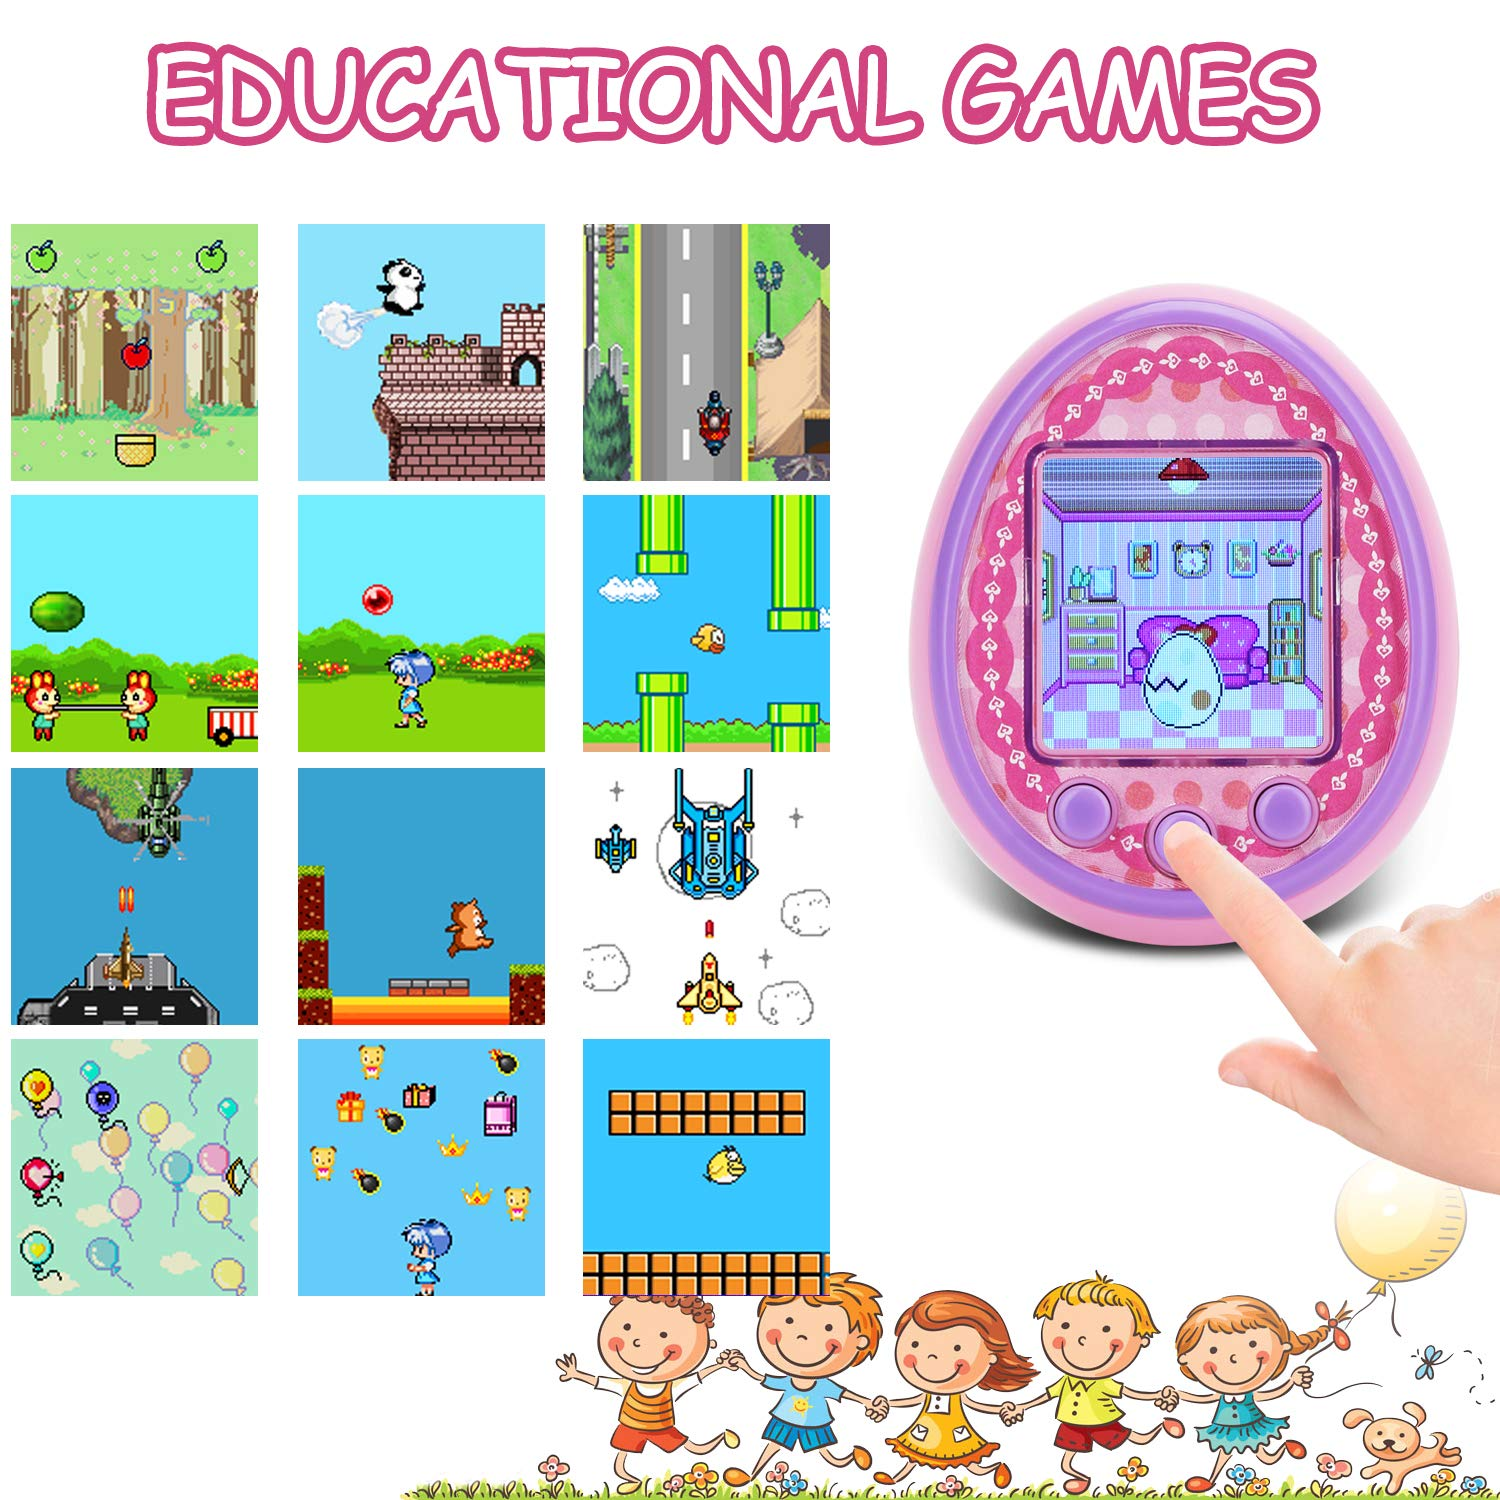 Virtual Digital Pets Toys Electronic Pets Game Machine HD Color Screen for Over 6 Years Old Child Toy 2019 New Version as a Best Birthday Gift for Boys Girls by Touma pets (Image #5)